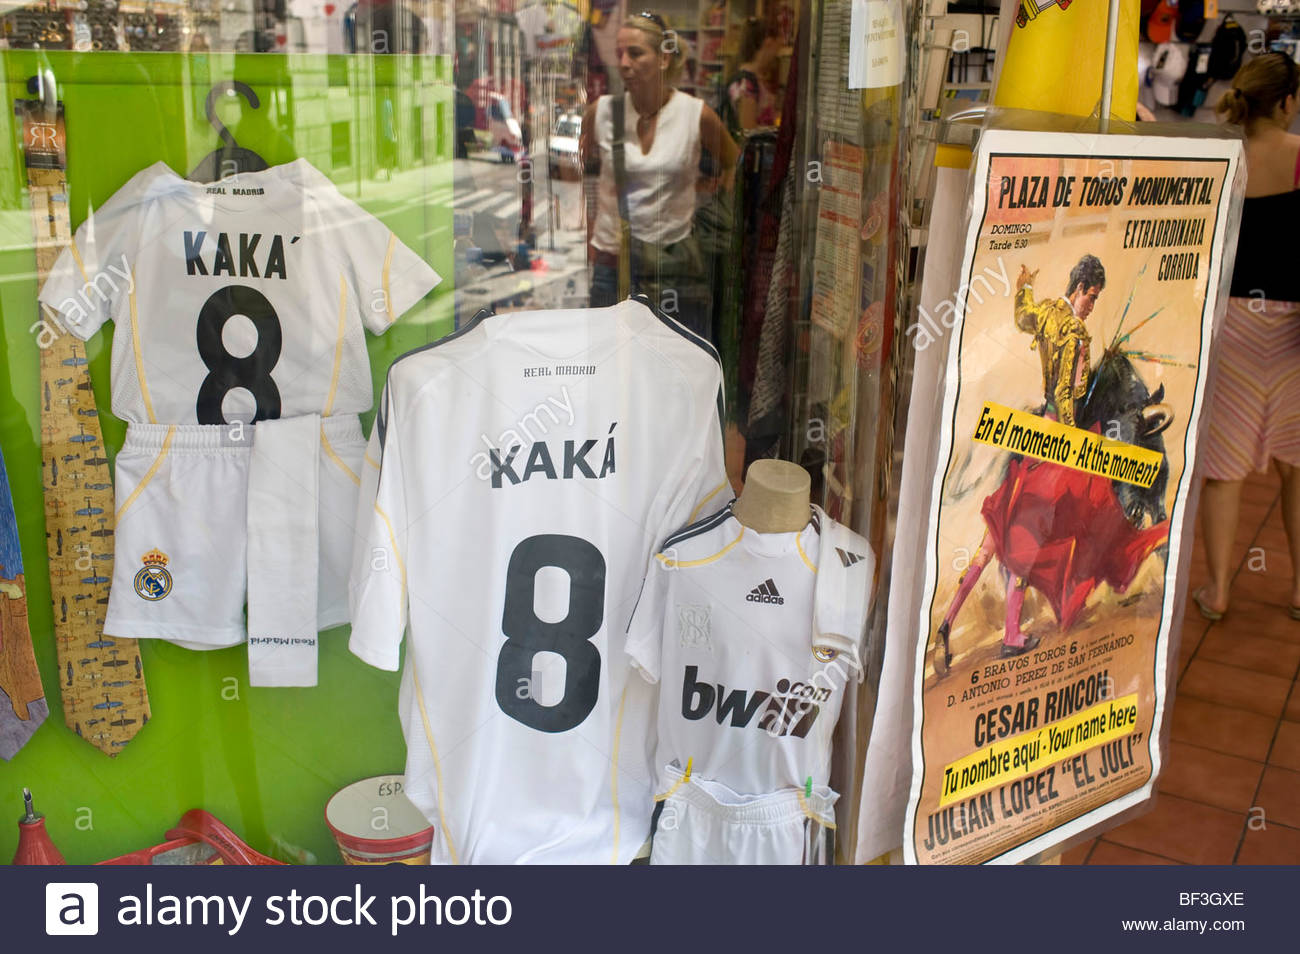 b03710422 Madrid shop window with Real Madrid football team shirts of the player Kaka  - Stock Image